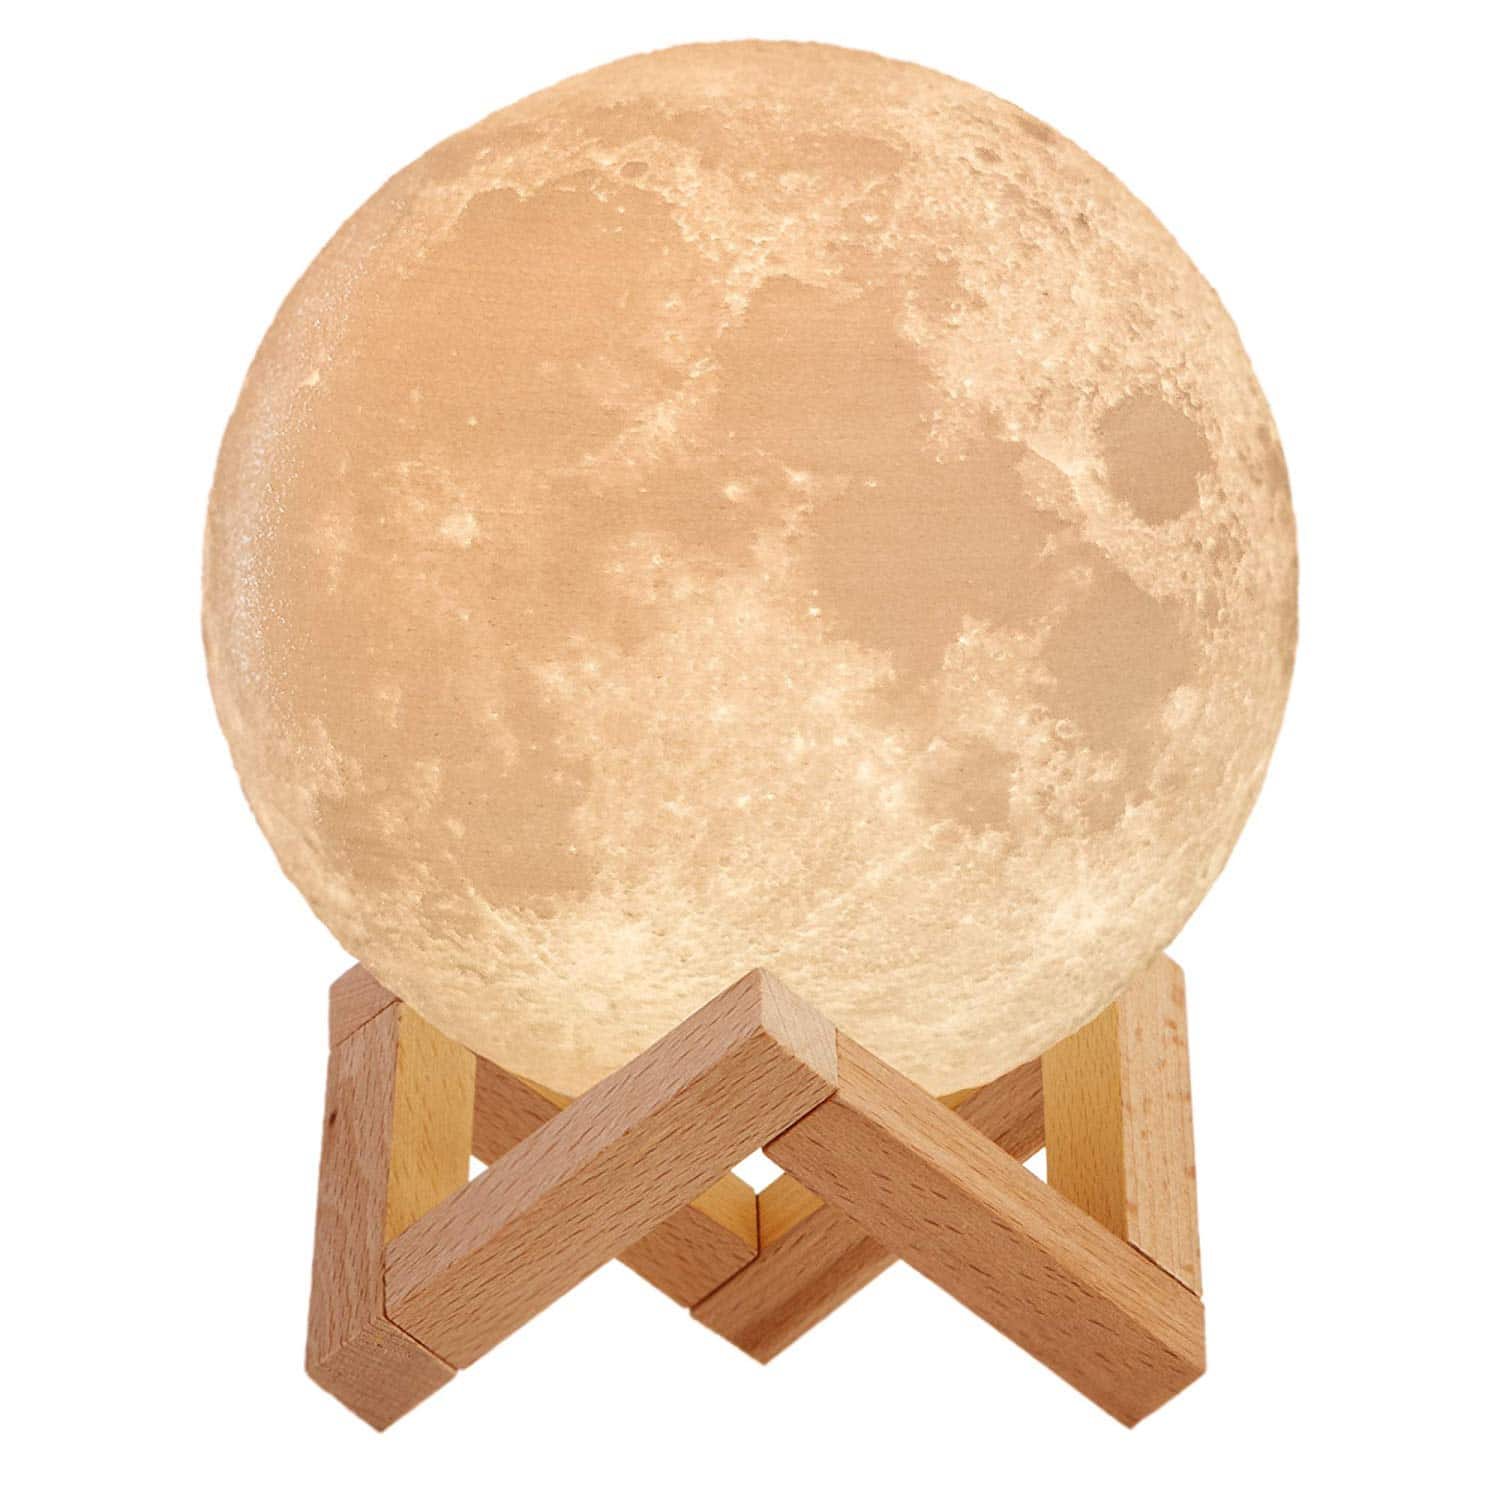 space-gifts-moon-lamp